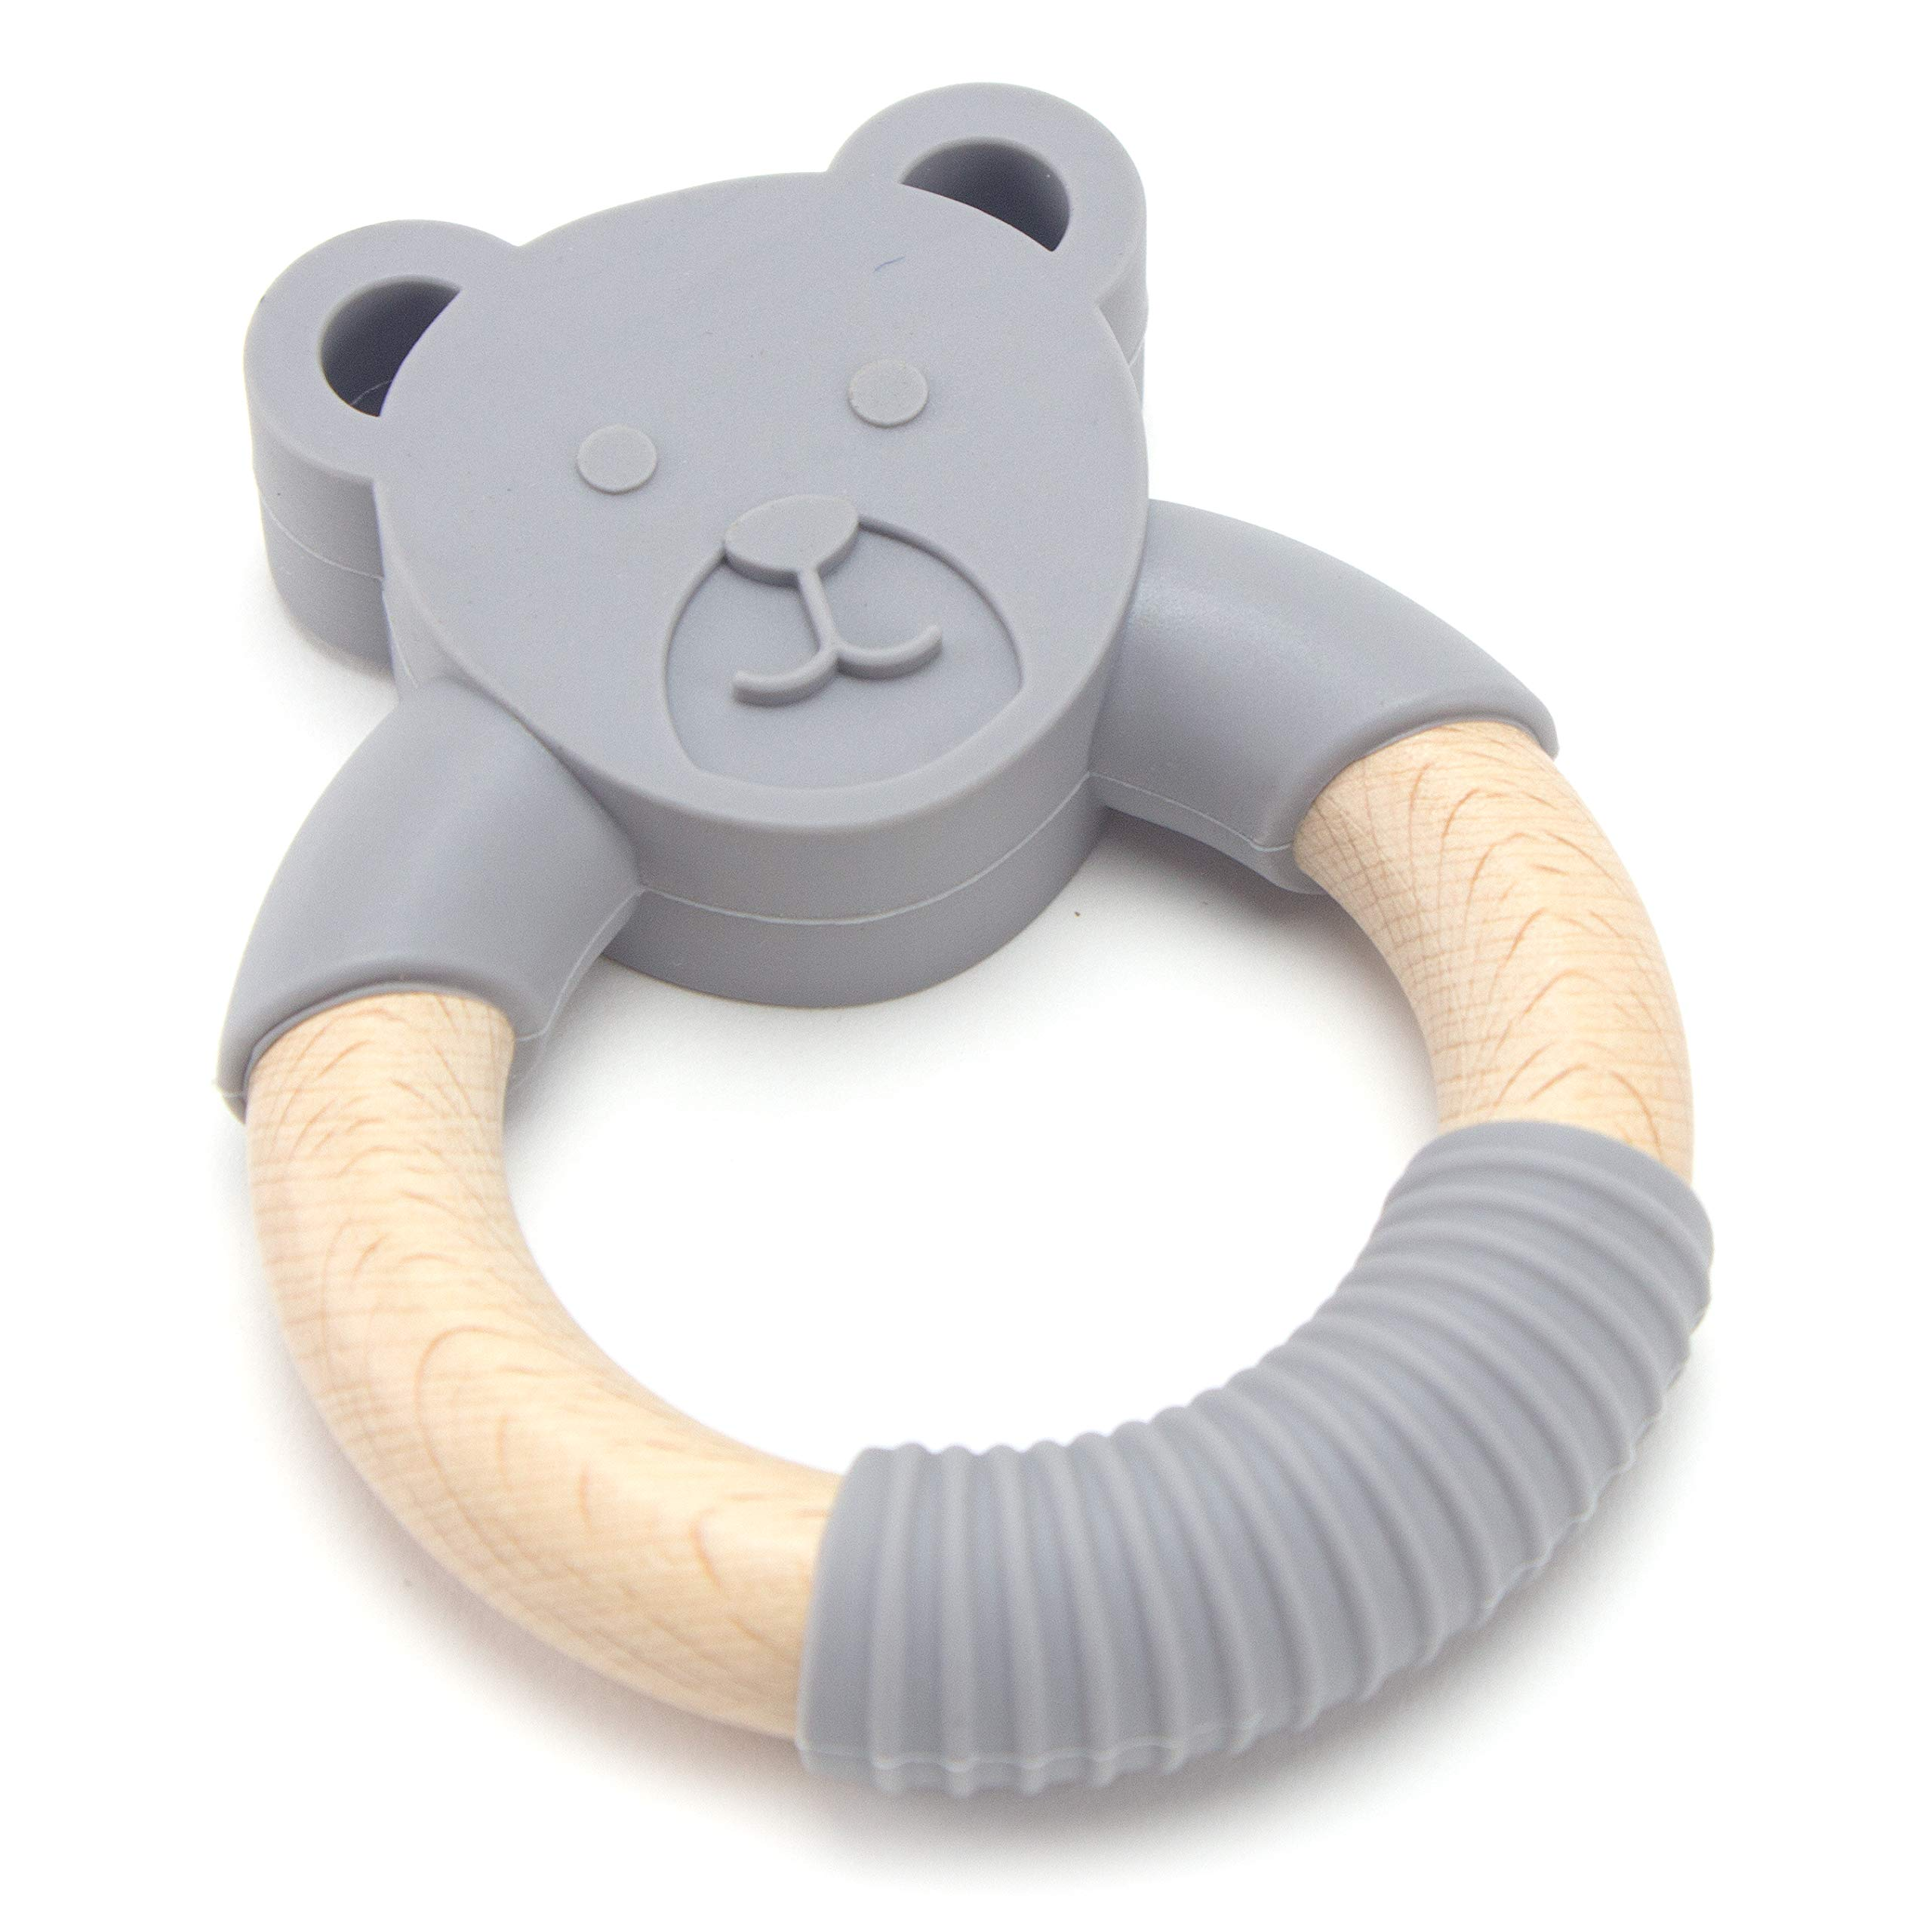 Organic Animal Natural Wood and Silicone Baby Teether Chew Toy Ring (Grey)